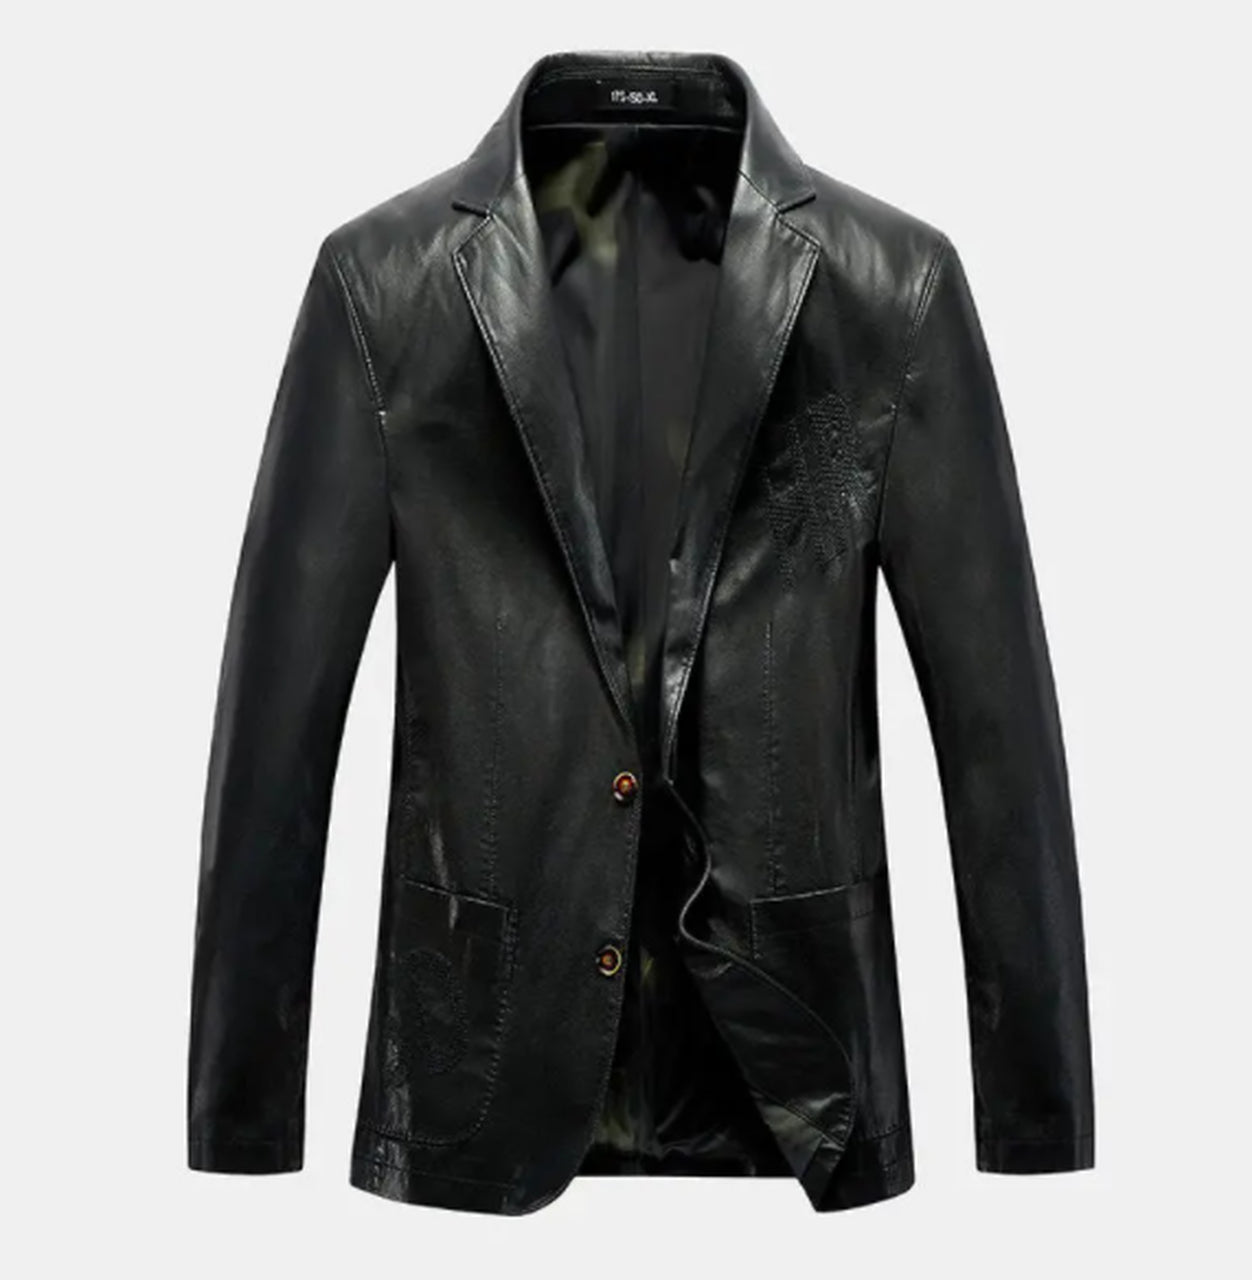 Geniune Leather Jacket Inside Pocket Caual Waring For Men